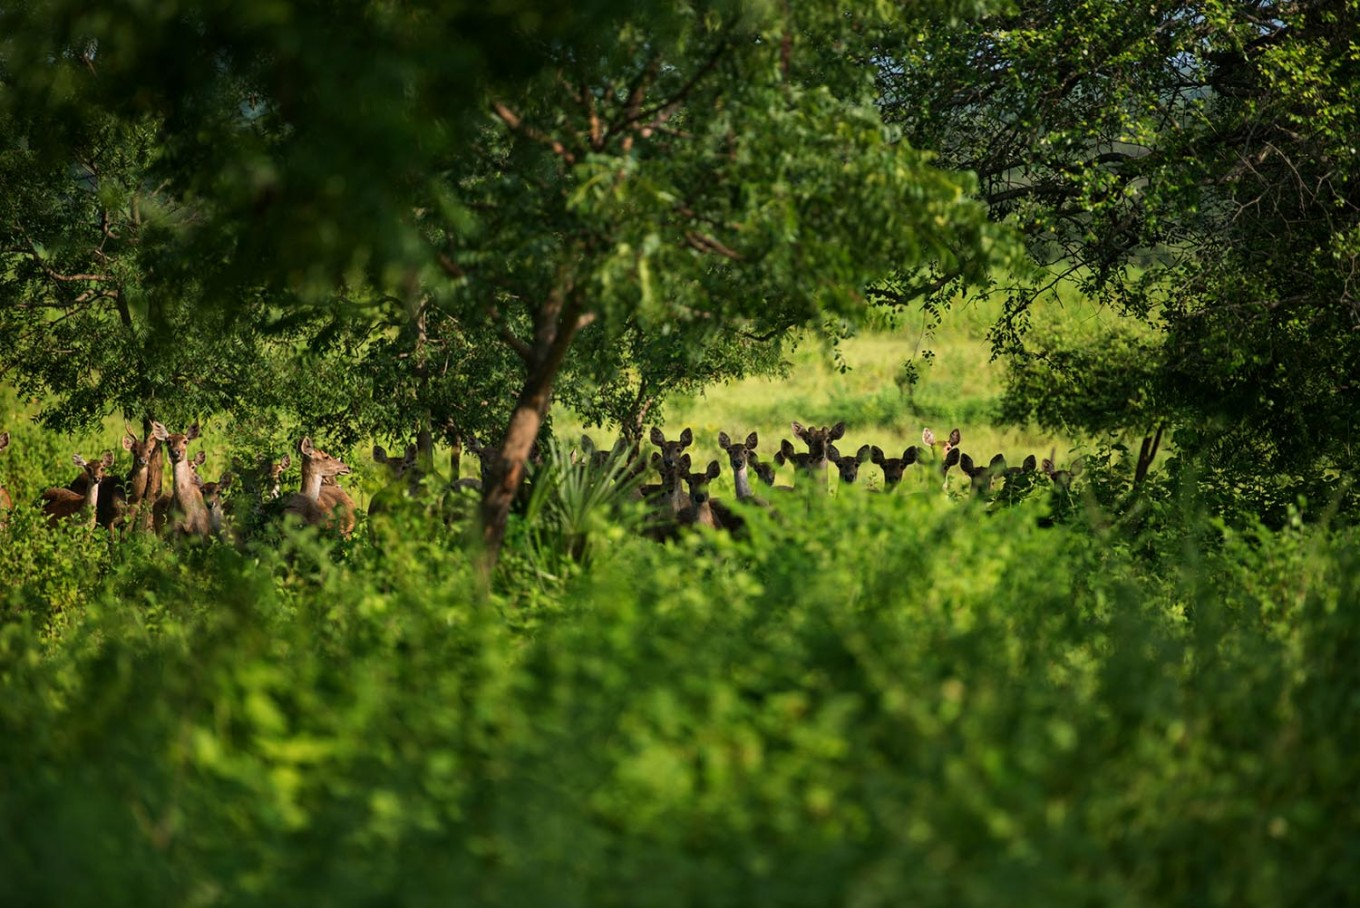 Dozens of deer stand together in the forest. JP/Tarko Sudiarno